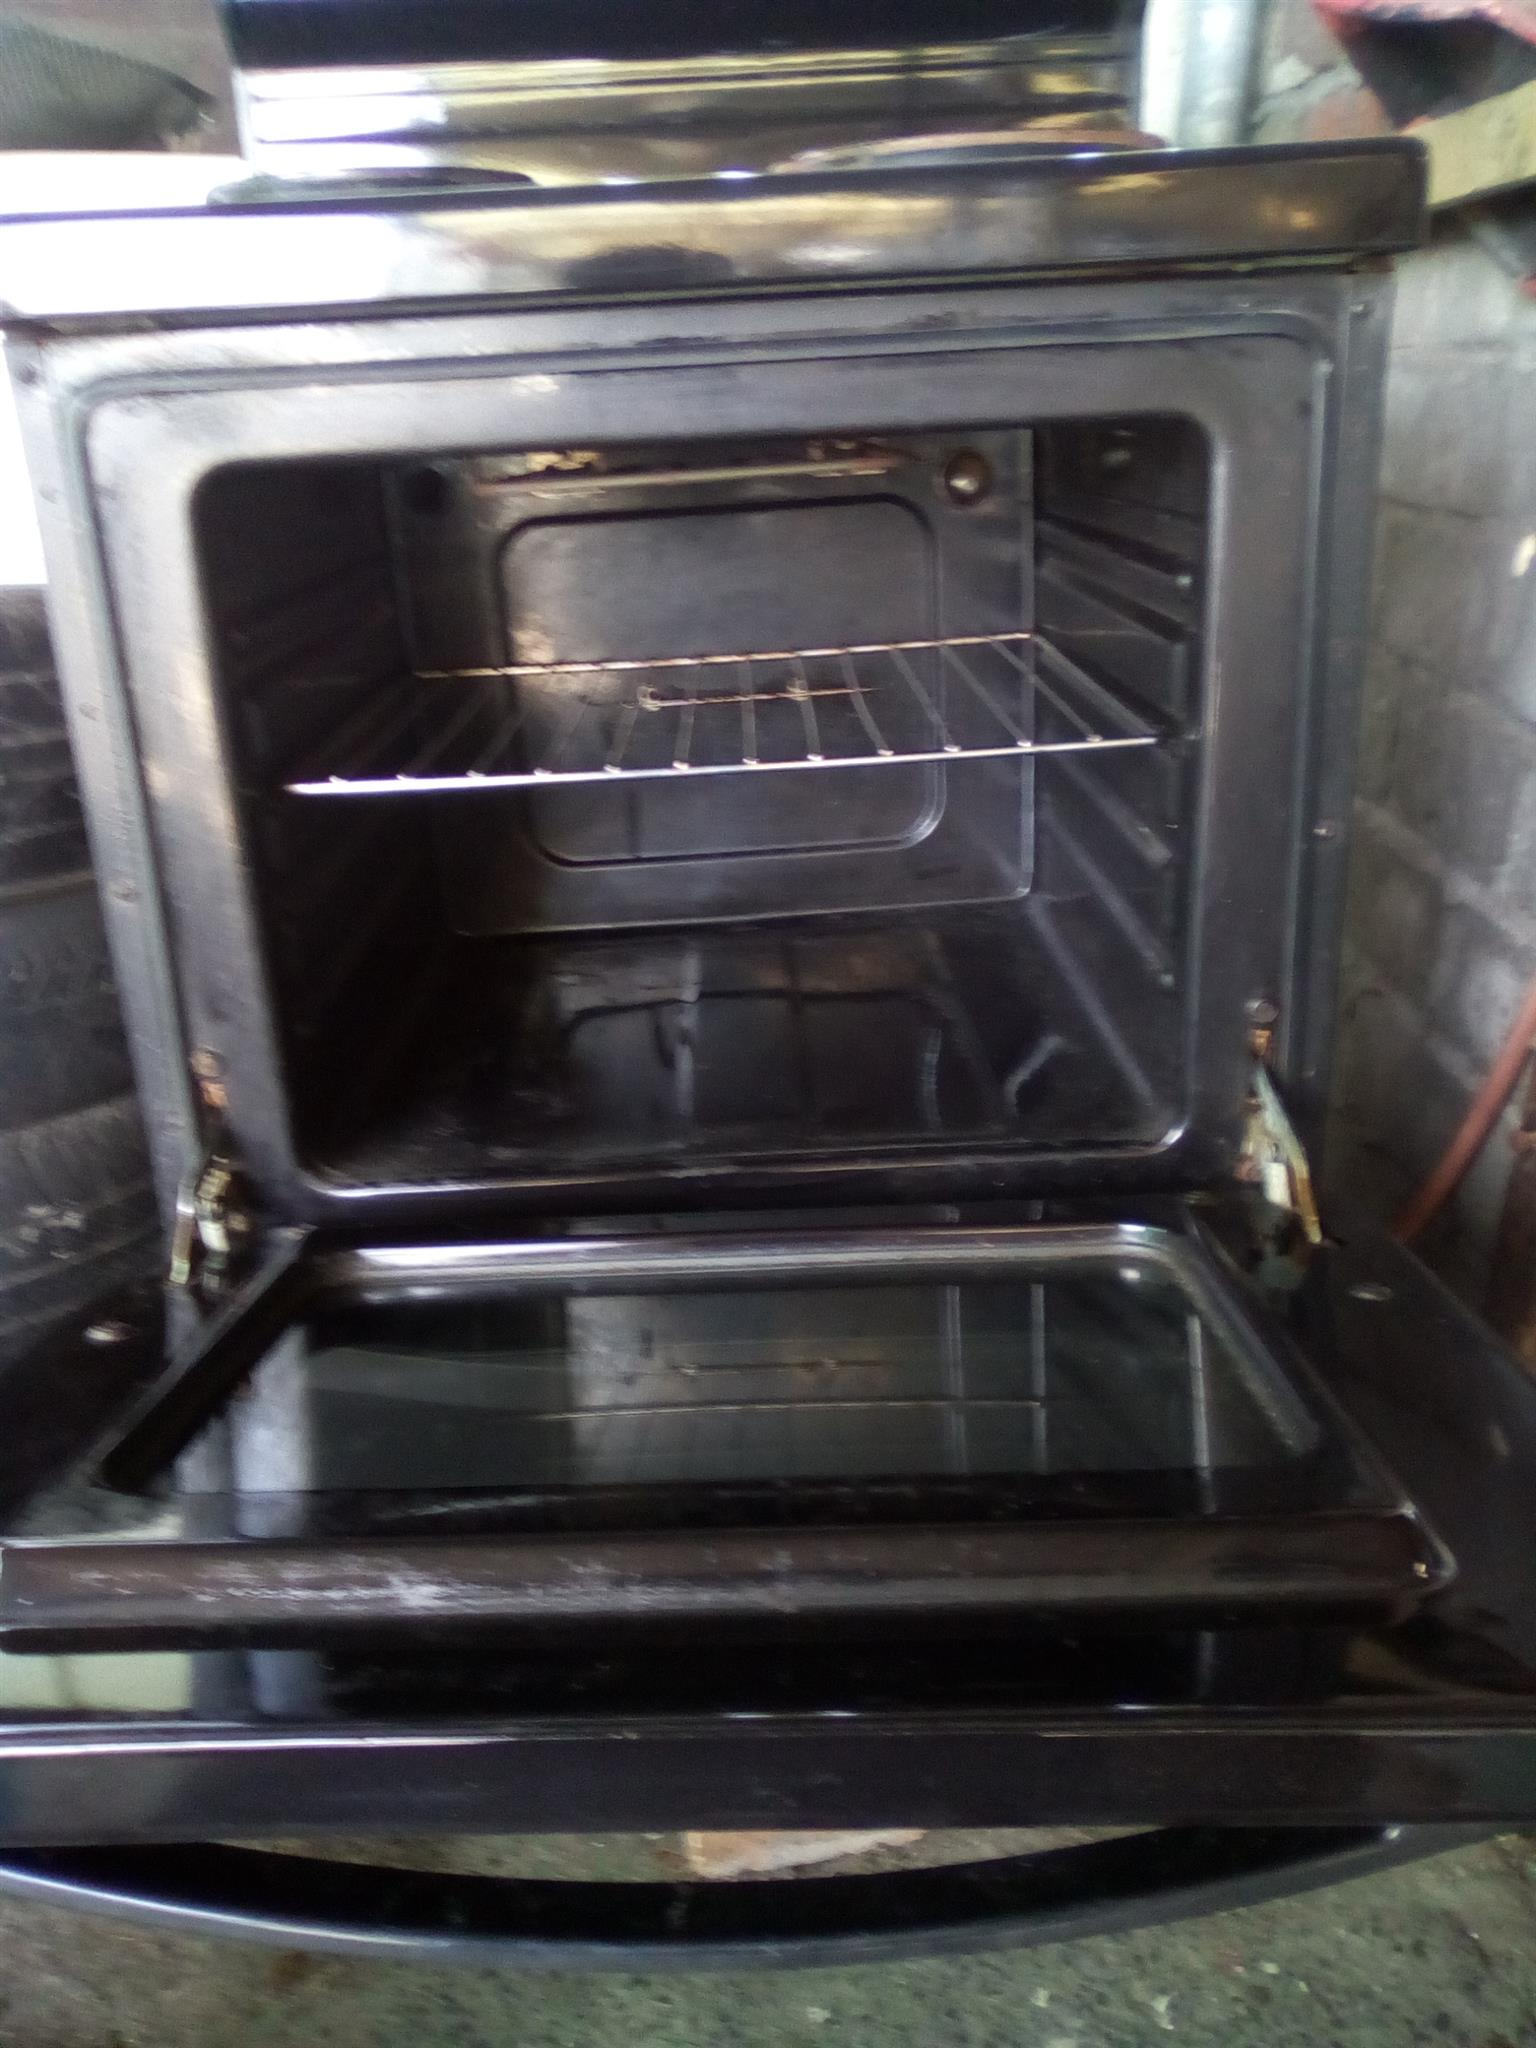 Kelvinator 4plate stove with oven and warmer